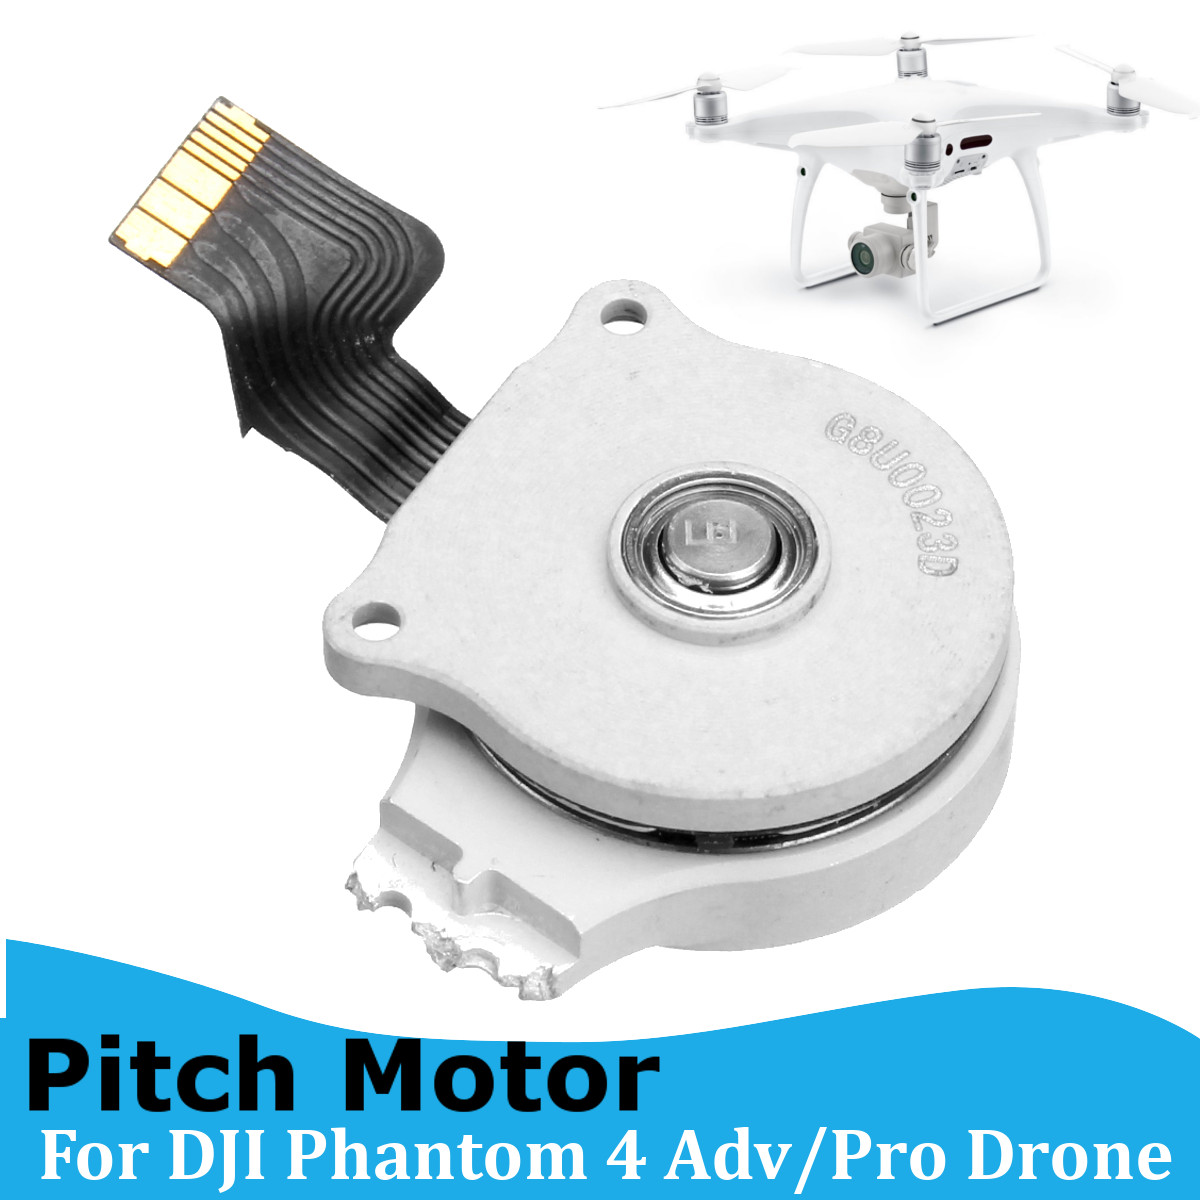 Gimbal Pitch Motor RC Quadcopter Parts For DJI Phantom 4 Adv/Pro - Photo: 2